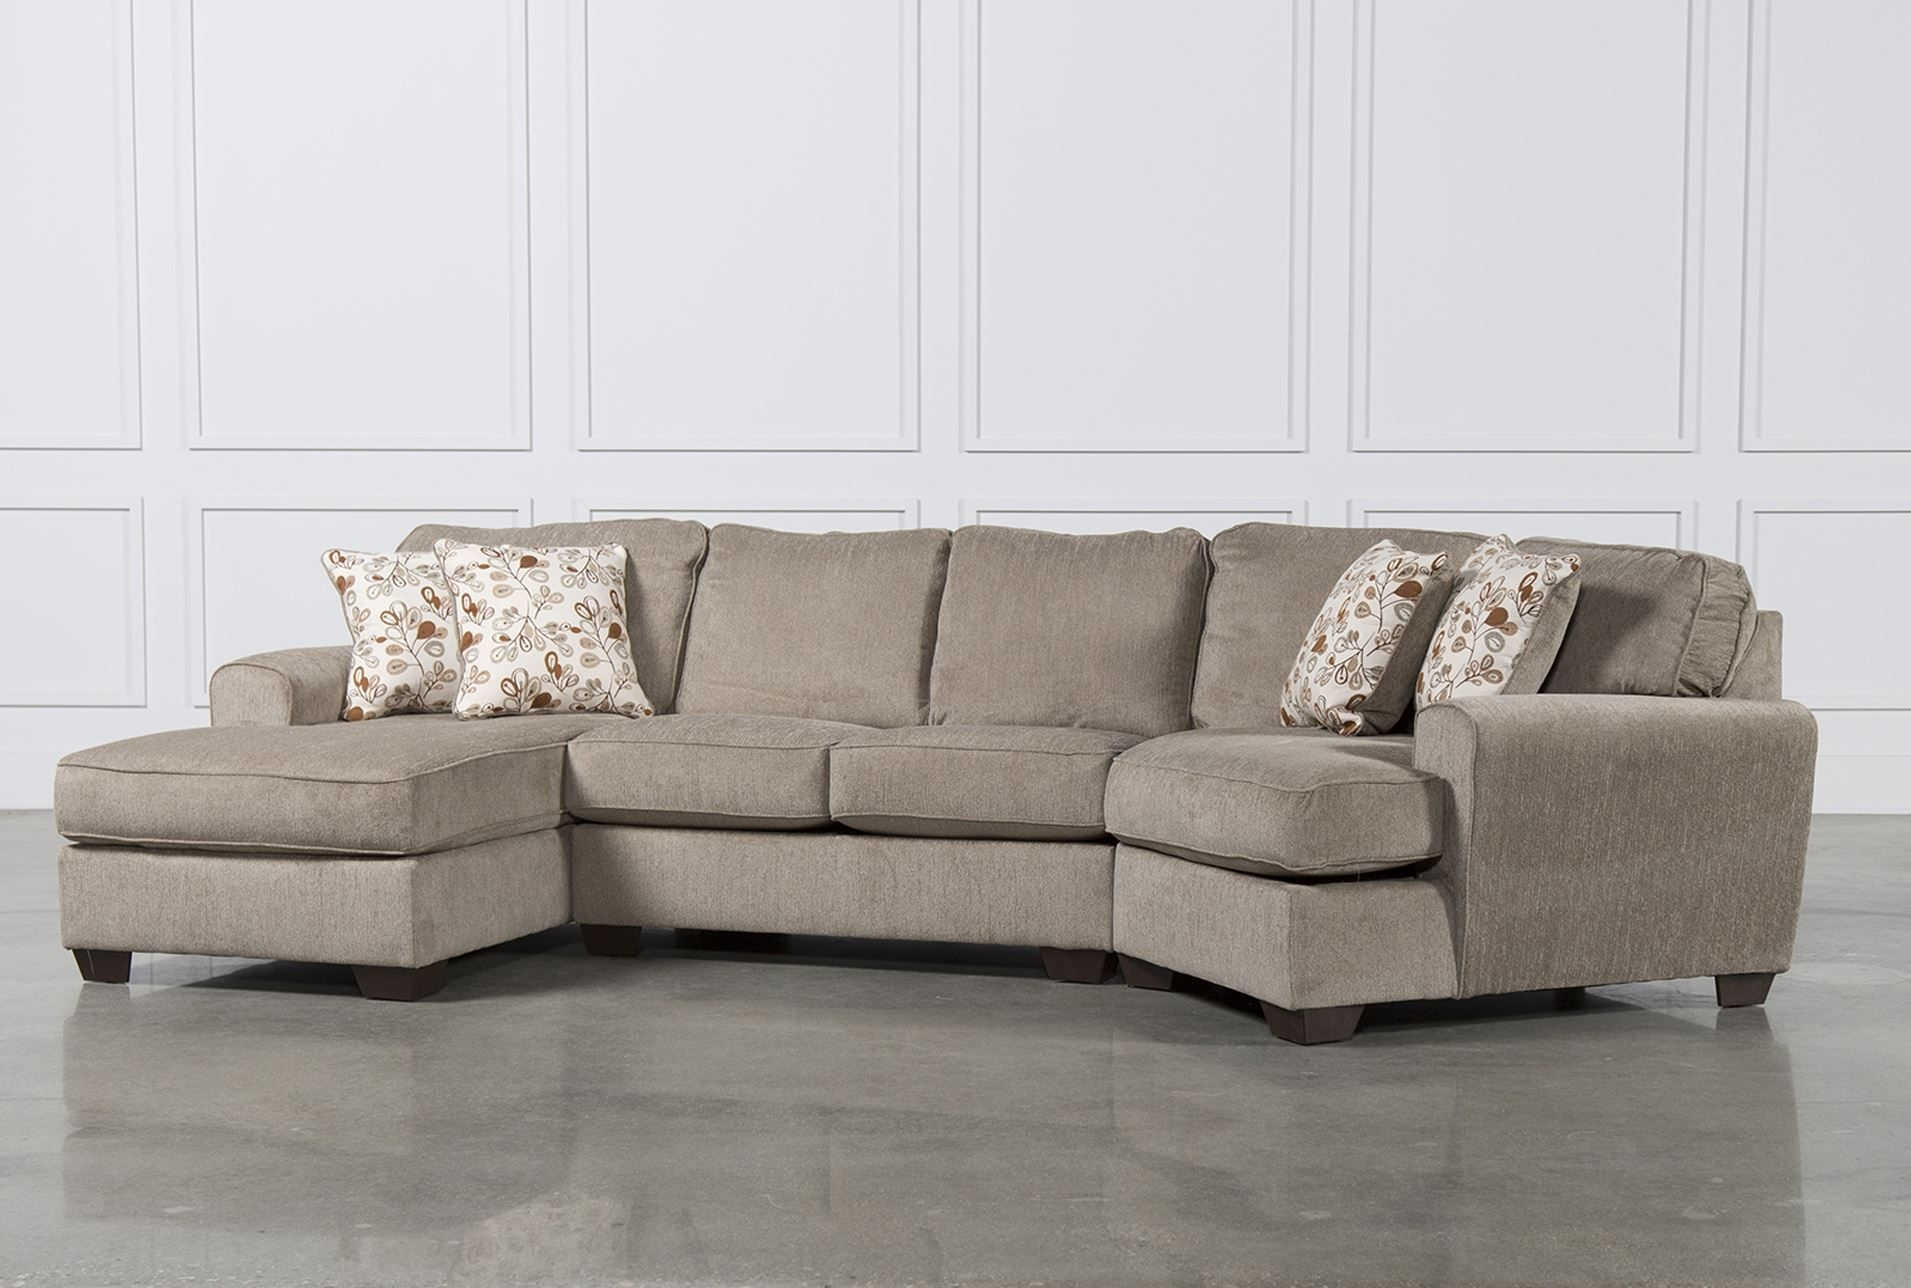 Patola Park 3 Piece Cuddler Sectional W/laf Corner Chaise For Cuddler Sectional Sofas (Image 8 of 10)